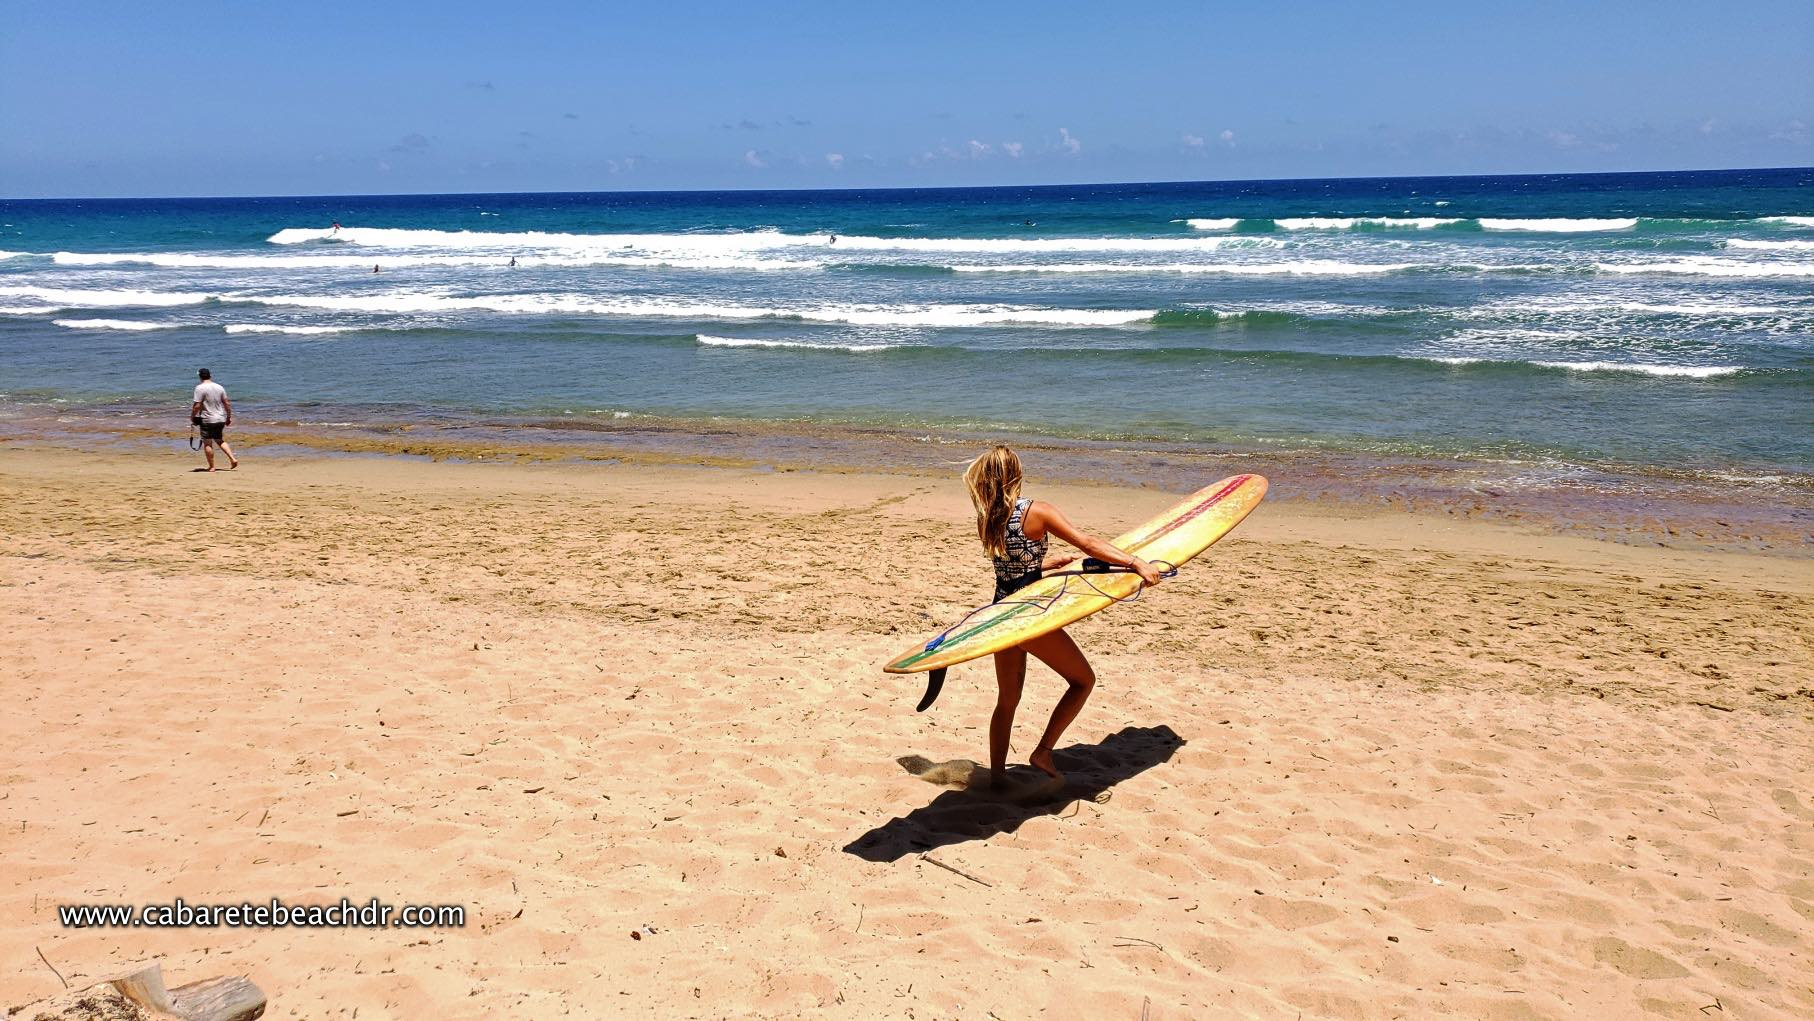 Blonde woman with surfboards